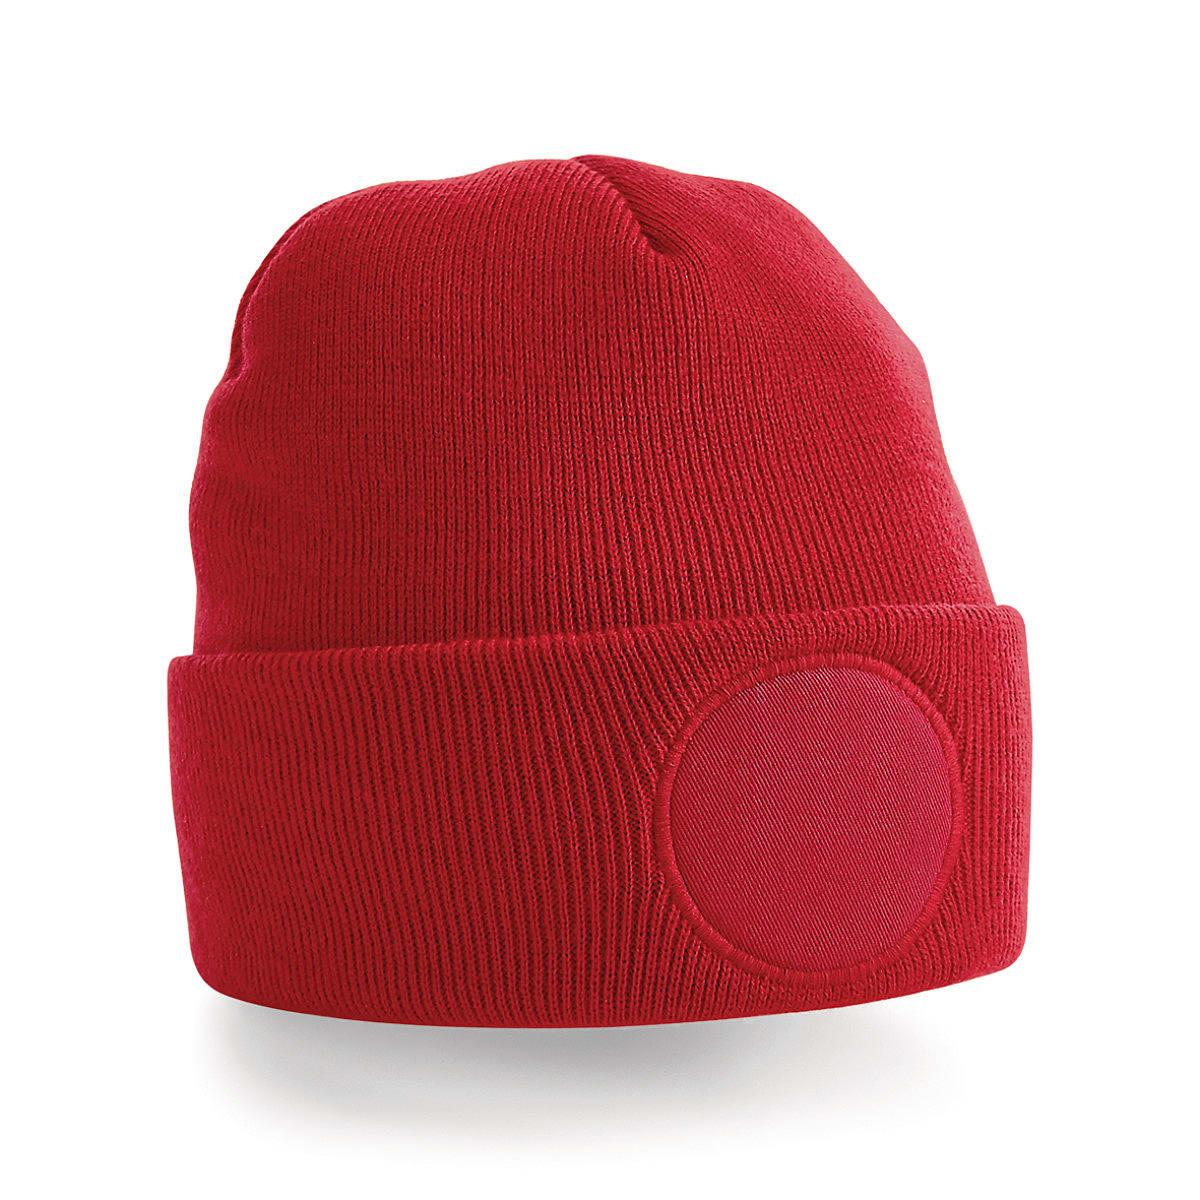 Beechfield Circular Patch Beanie Hat in Classic Red (Product Code: B446)